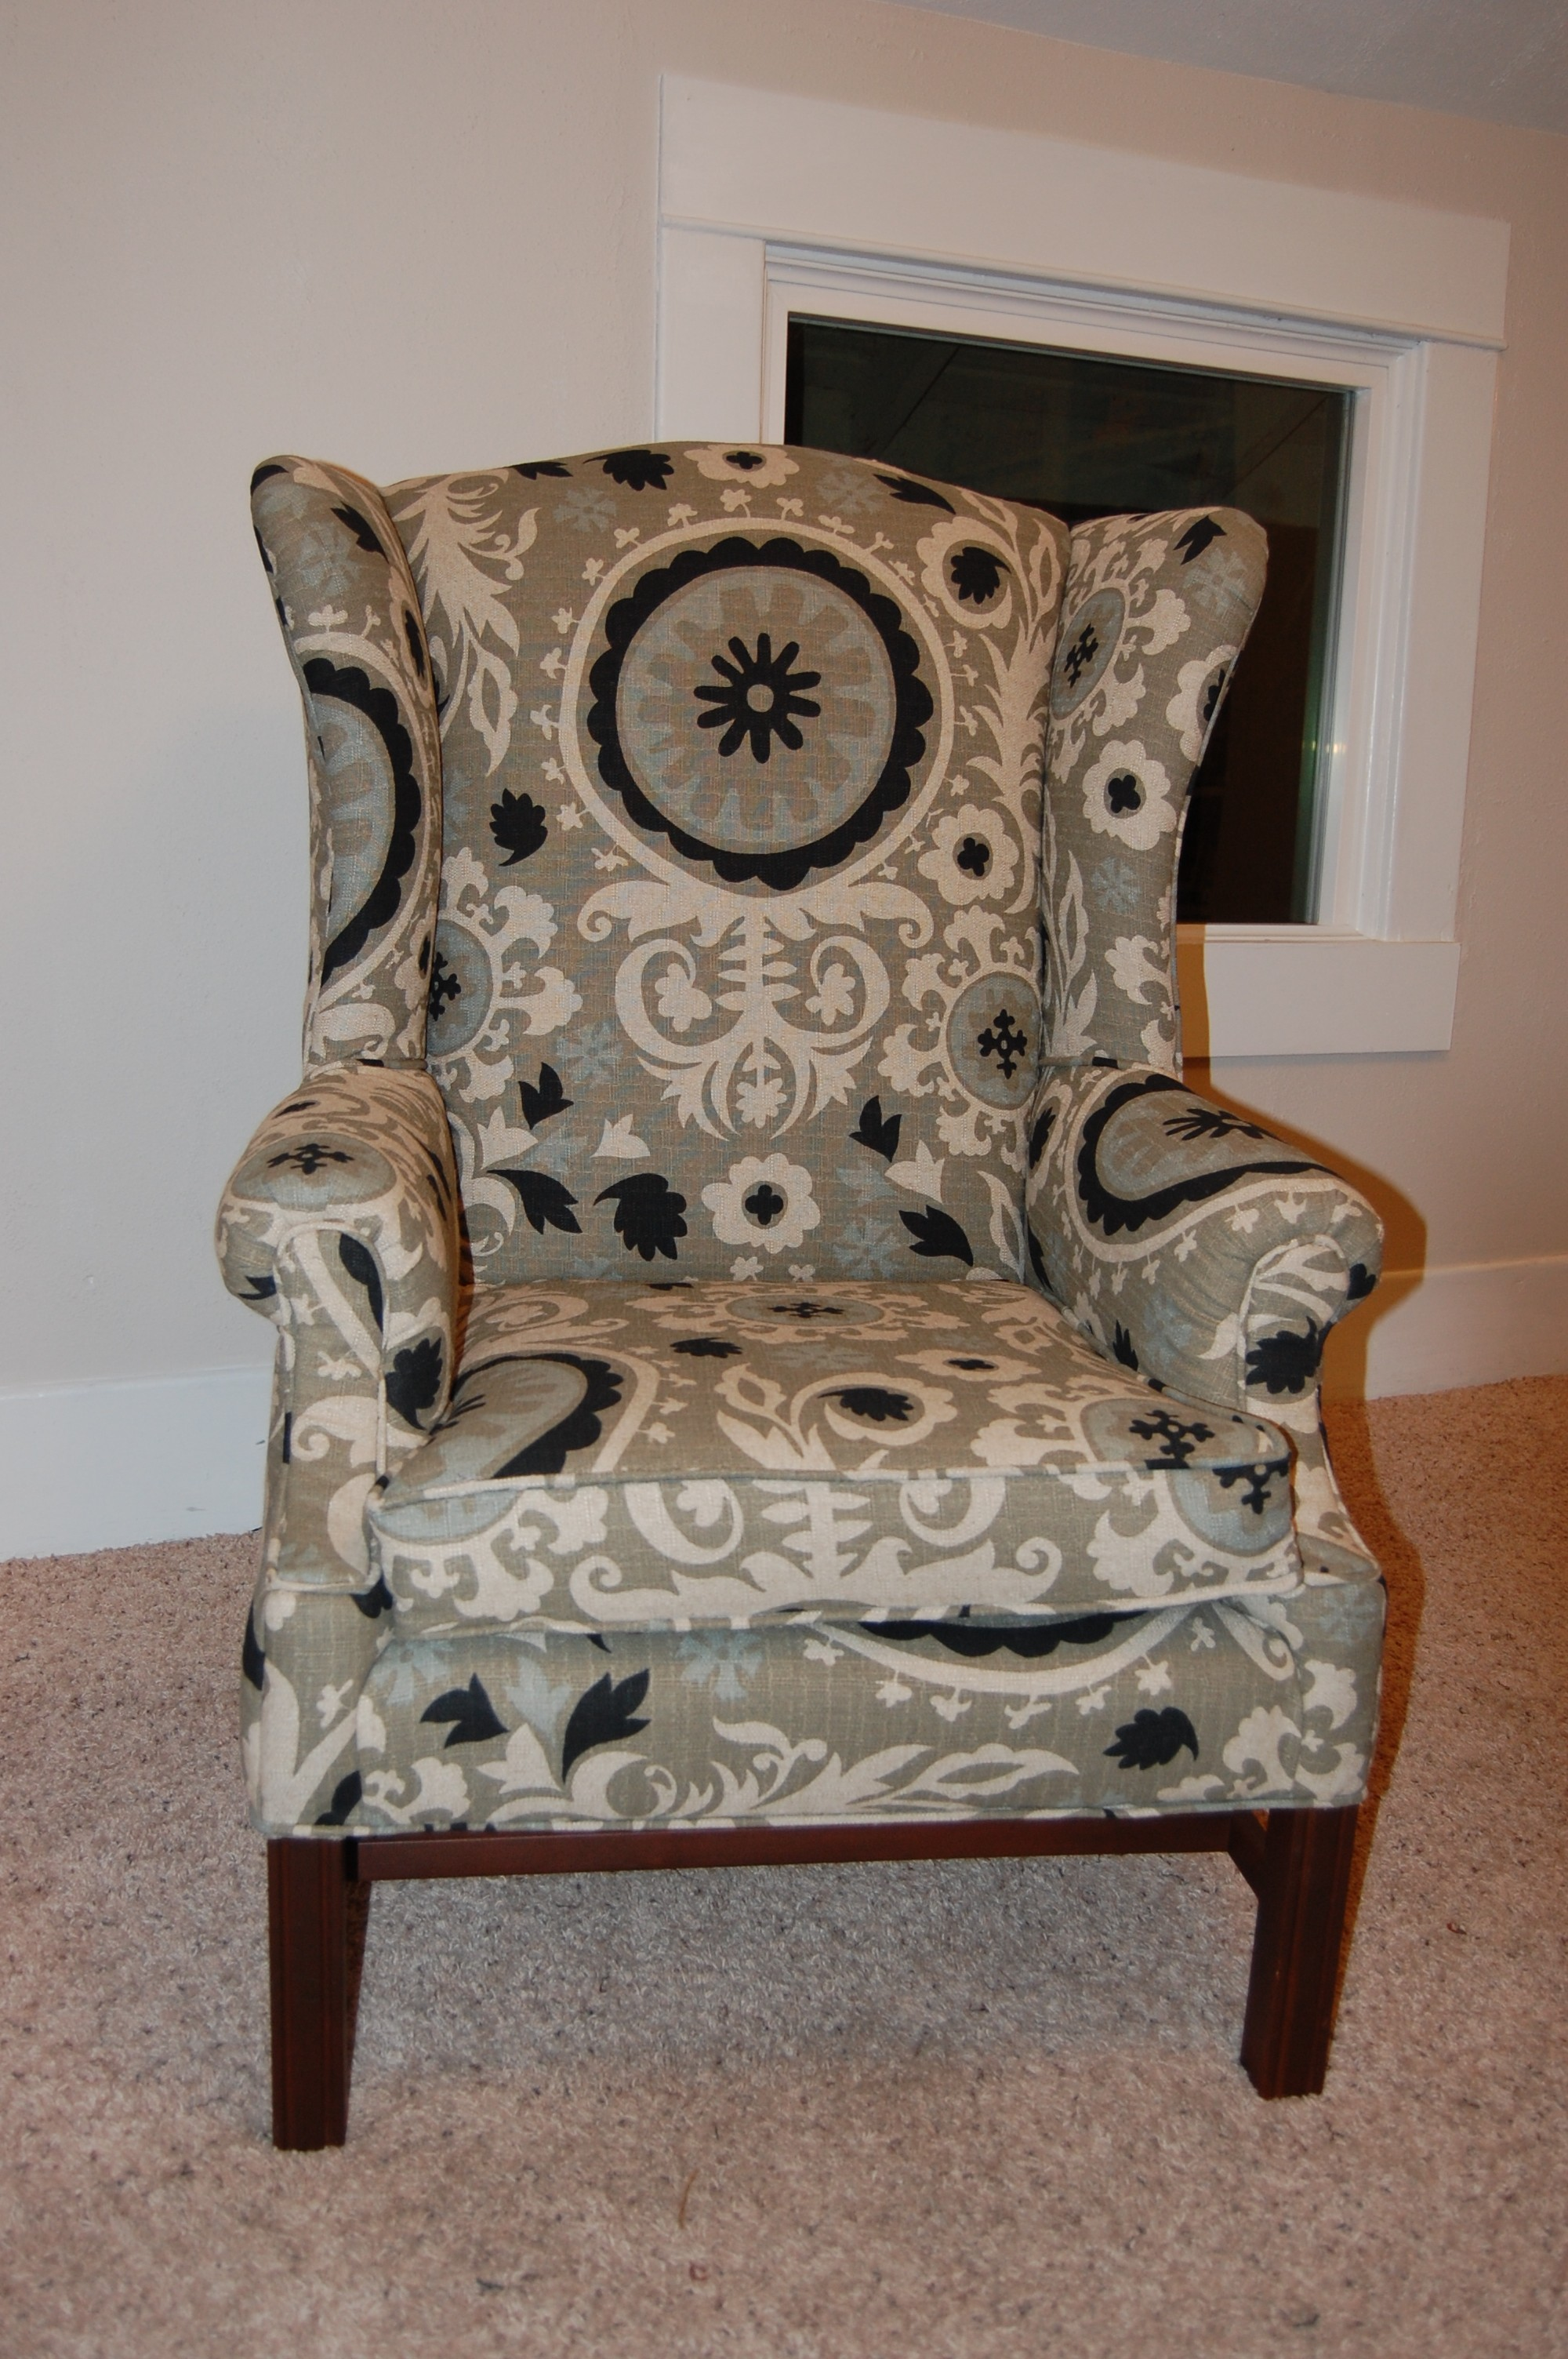 Artistic Reupholstering a Chair Ideas